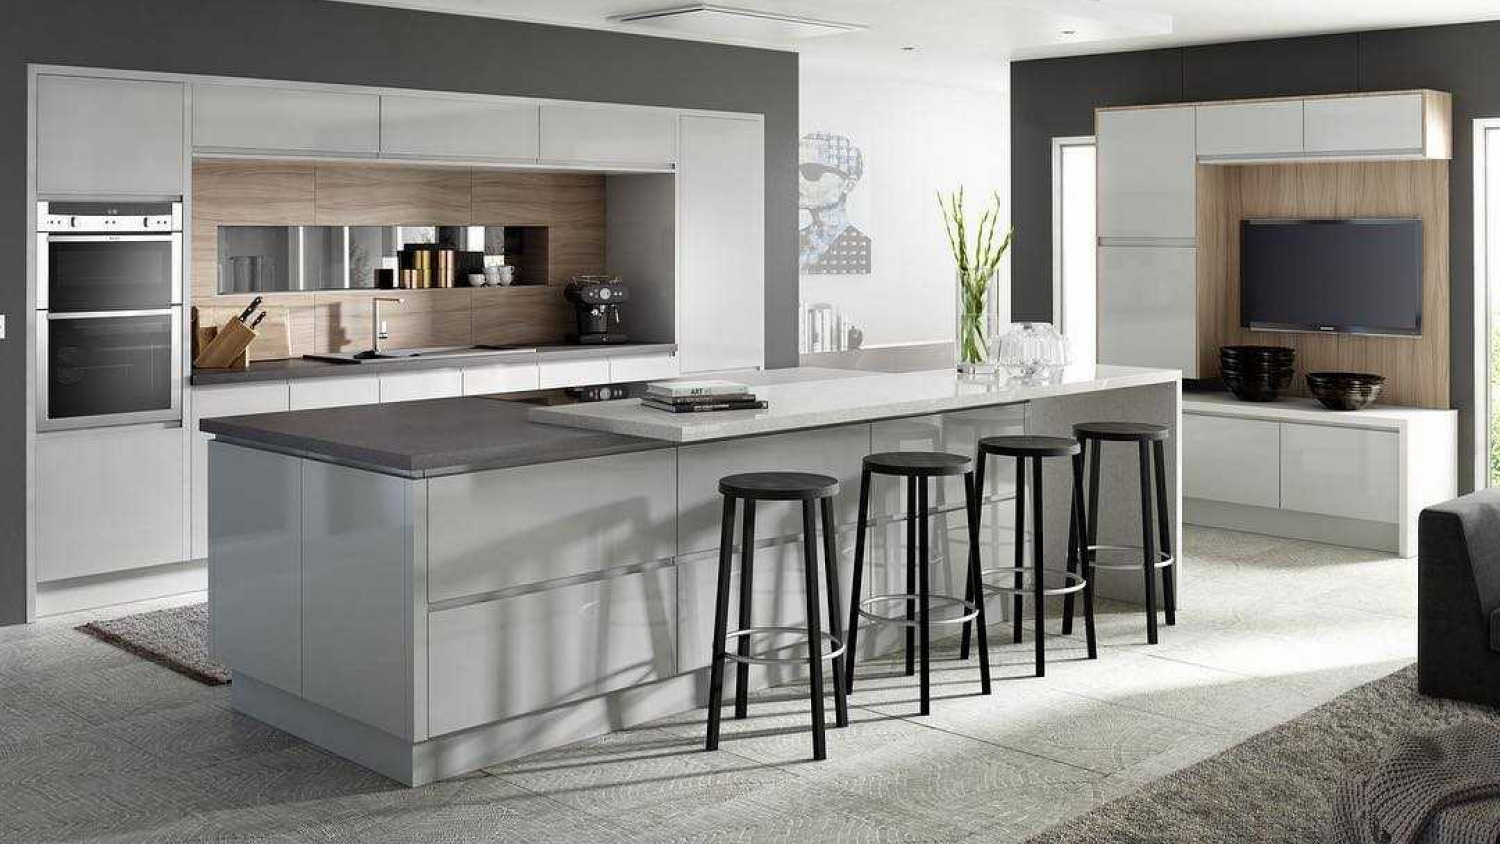 Kitchen Island Ideas Inspiration For Your Kitchen Omega Plc